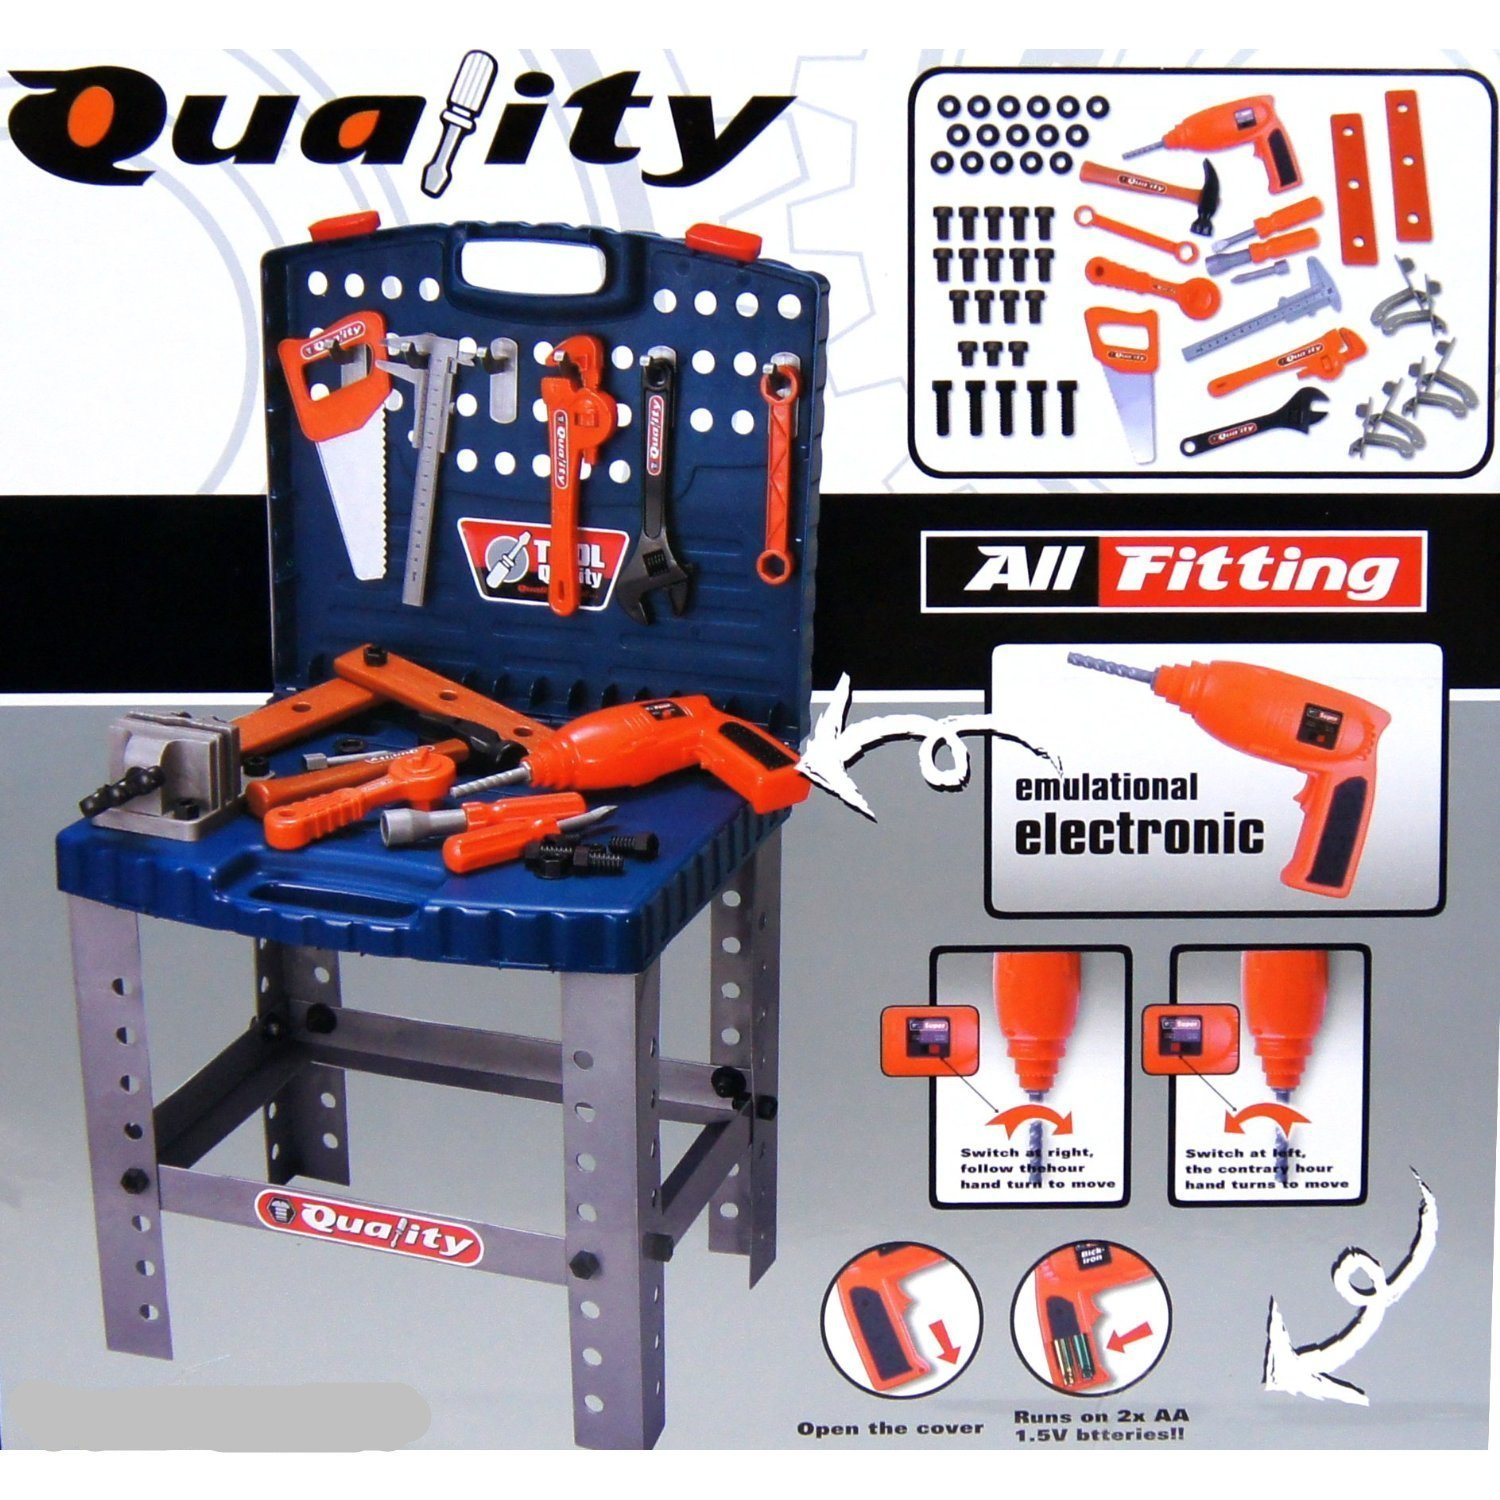 Amazon.com: Realistic Toy Tool Set Workbench Kids Workshop Toolbench with